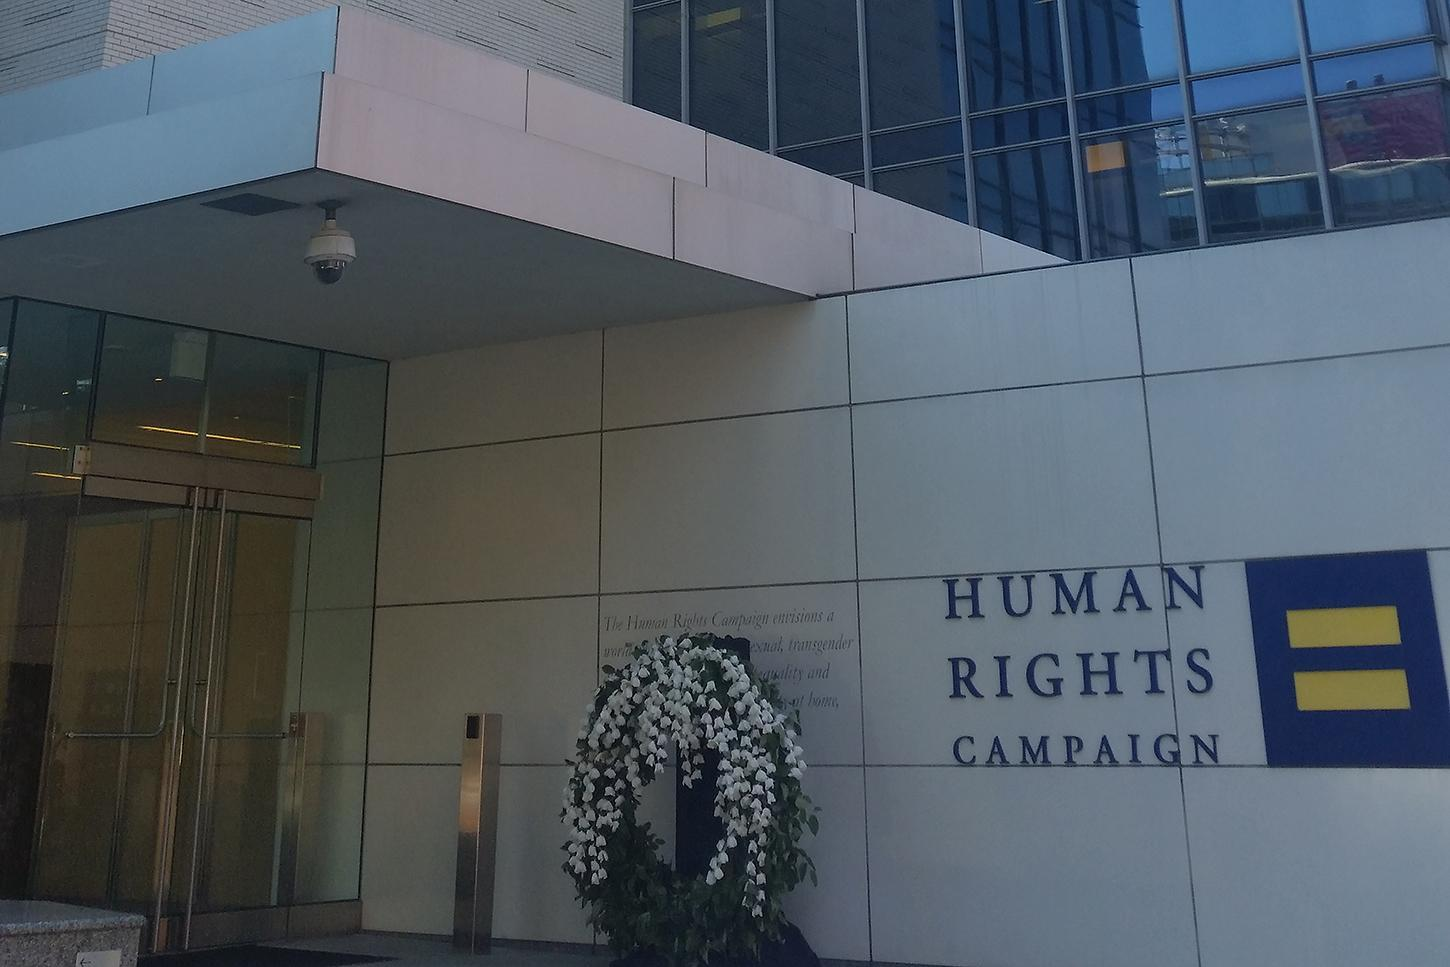 The headquarters of the Human Rights Campaign in Washington, D.C.